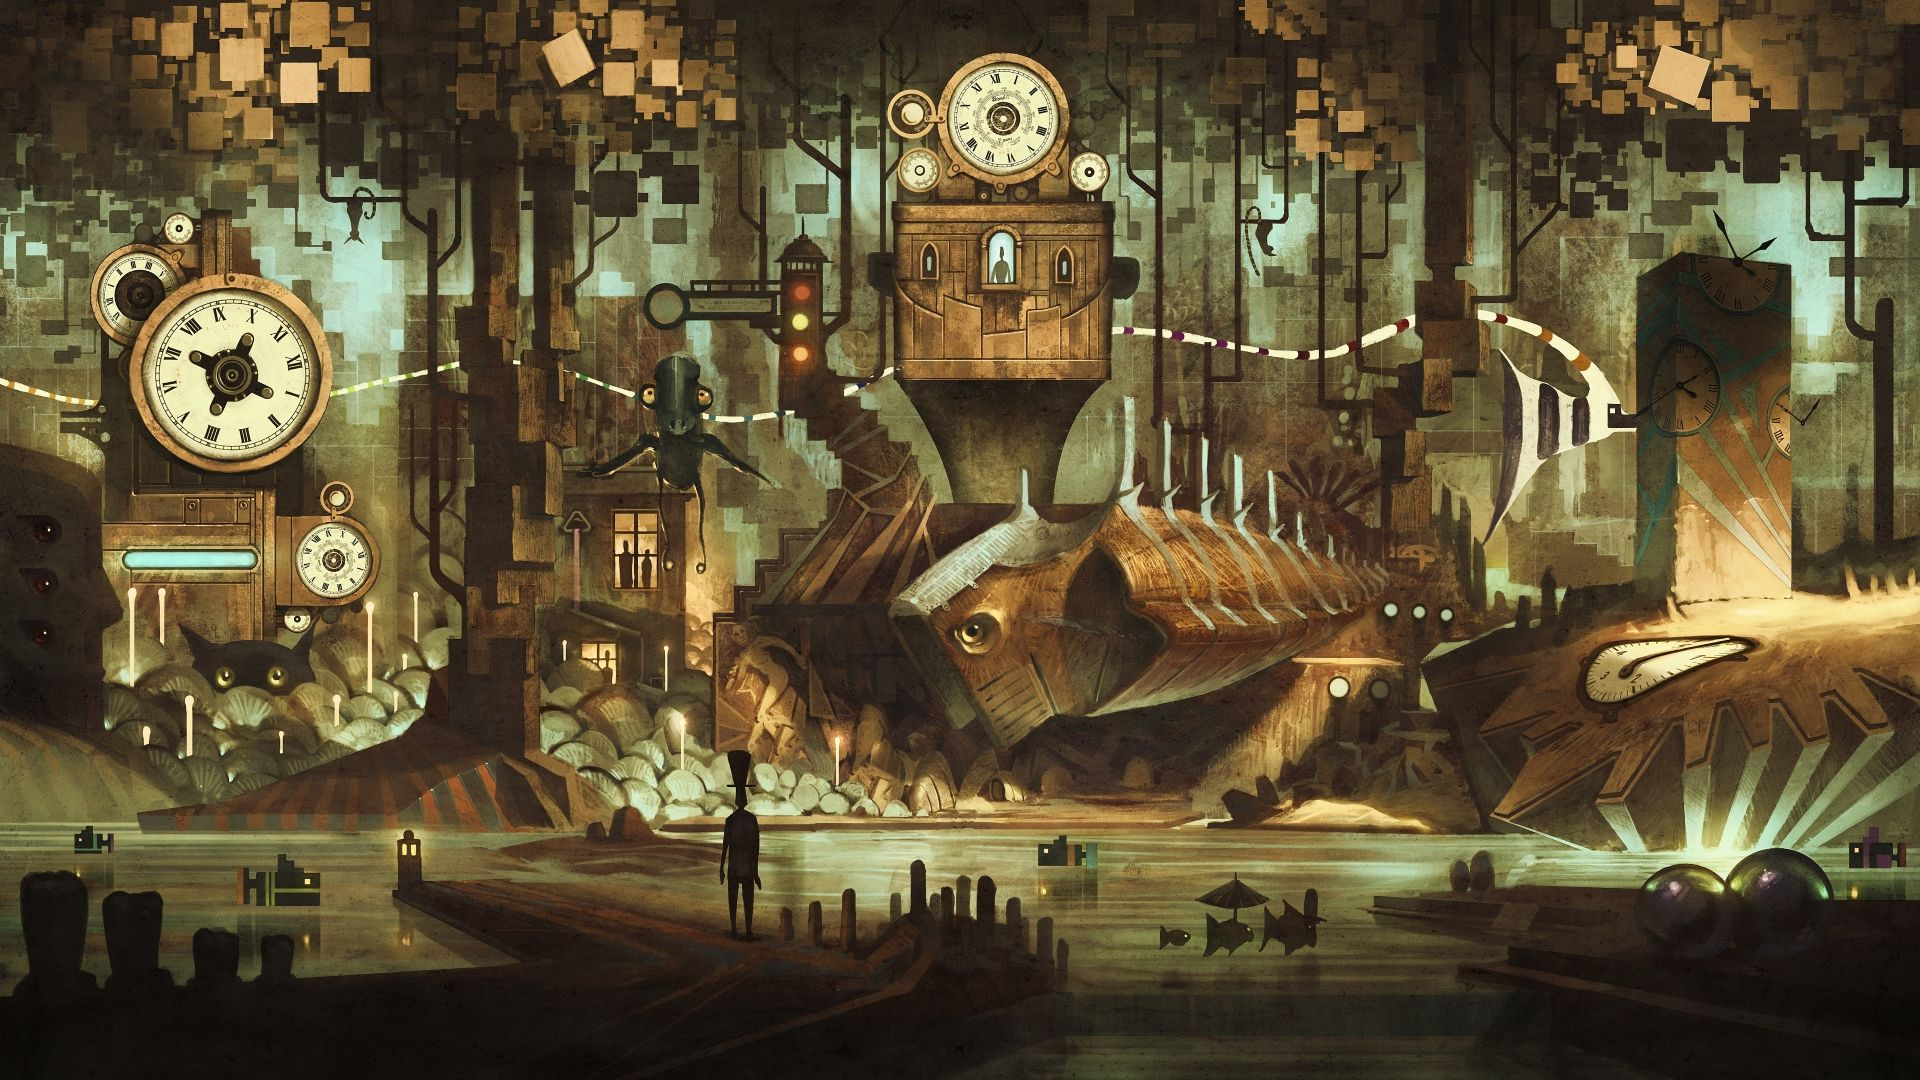 Steampunk download free wallpapers for pc in hd